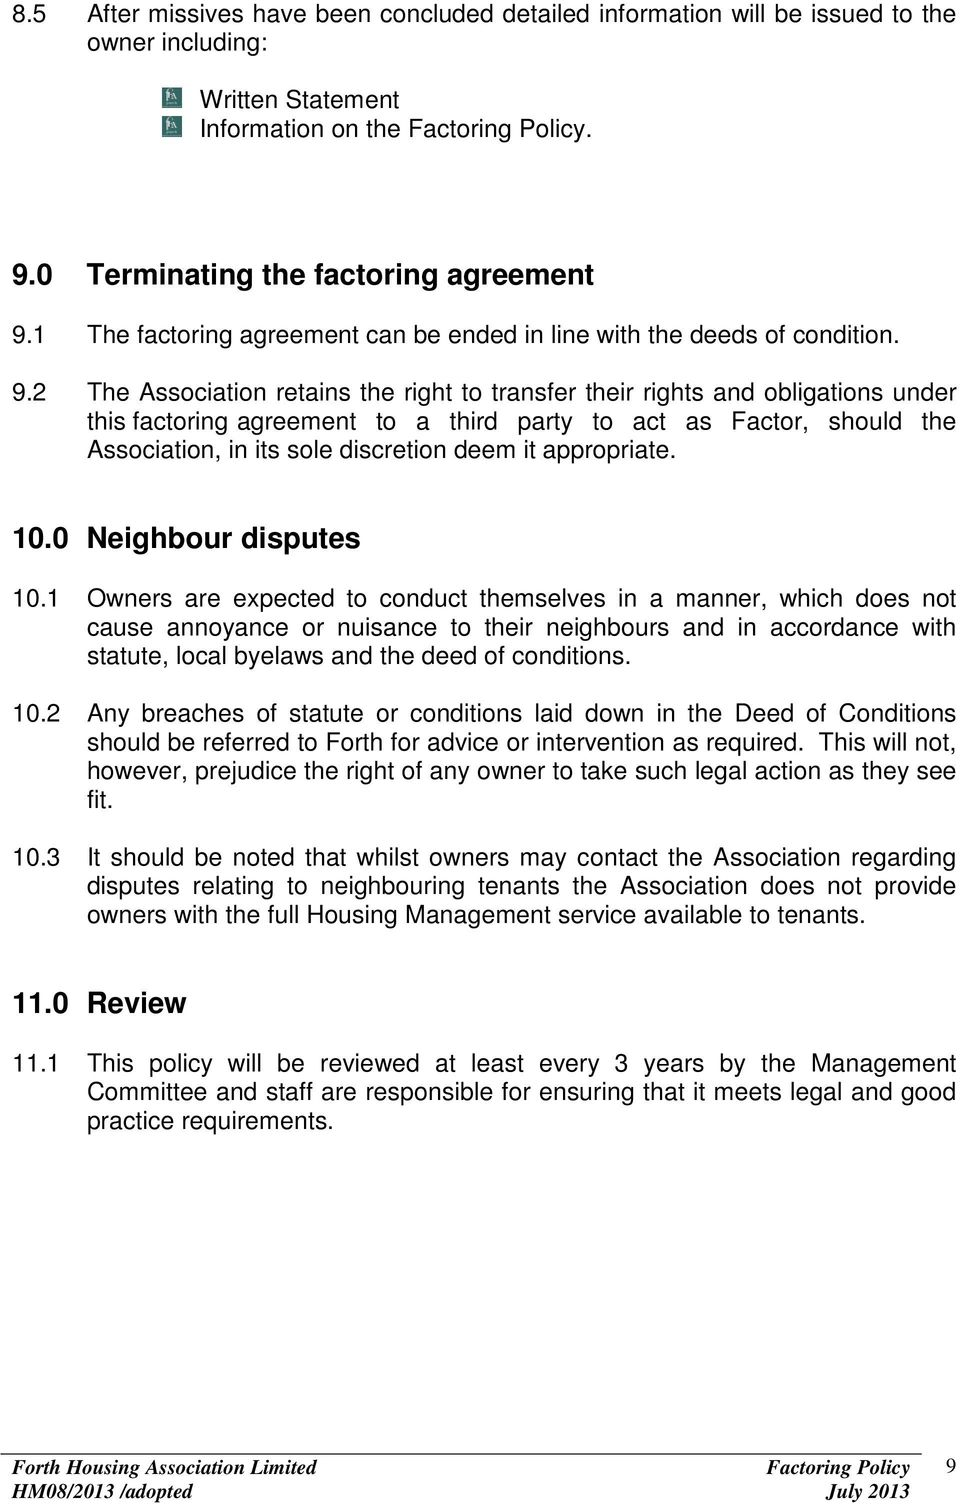 2 The Association retains the right to transfer their rights and obligations under this factoring agreement to a third party to act as Factor, should the Association, in its sole discretion deem it